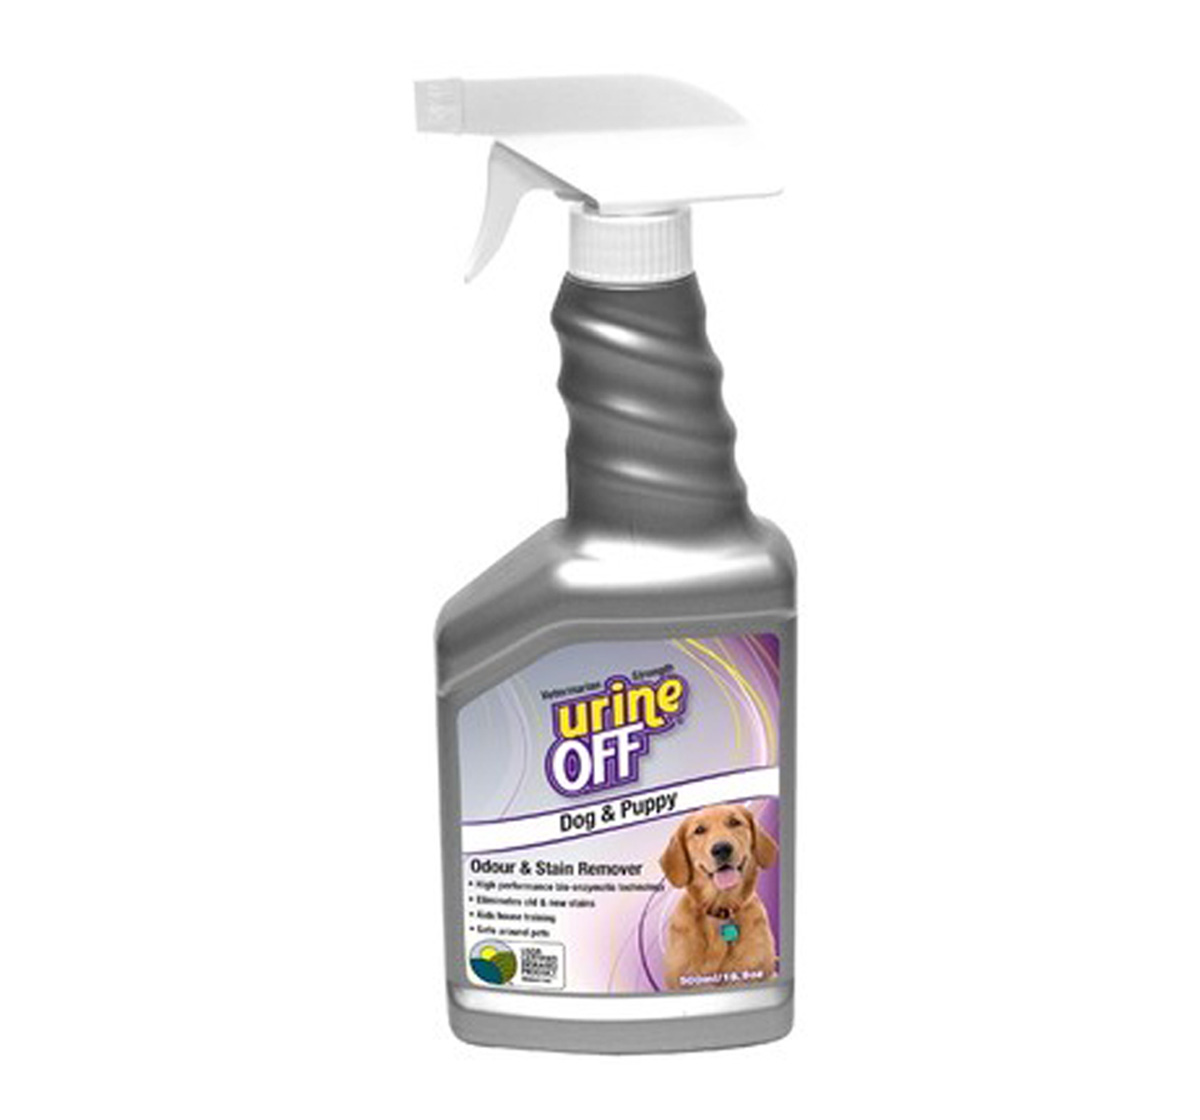 Urine Off Dog & Puppy Stain & Odour Remover - 500 ml